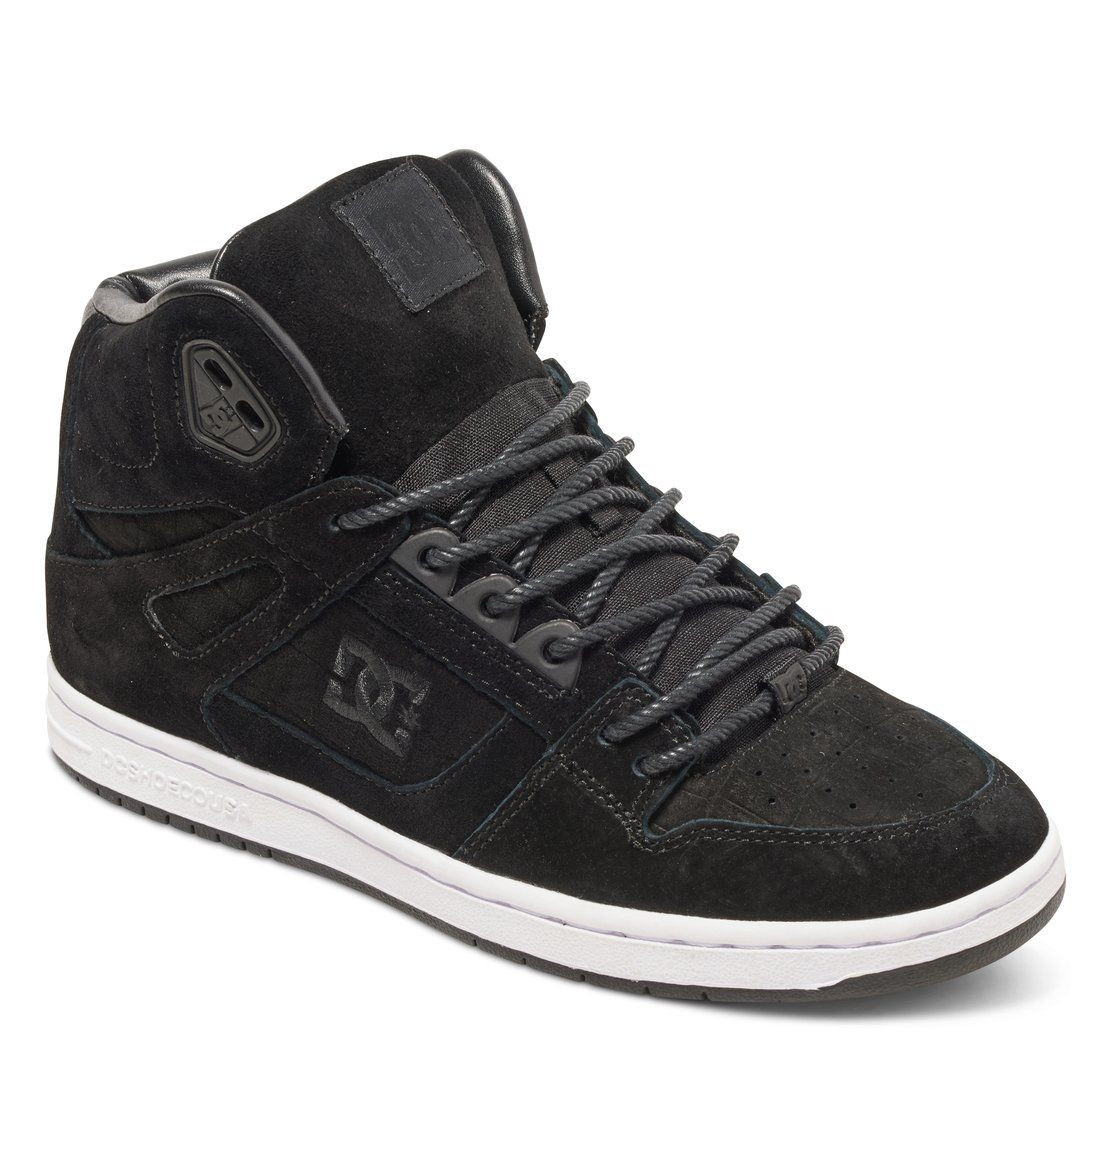 $85.00 dcshoes, Women's Rebound XE High Top Shoes, BLACK SMOOTH ...